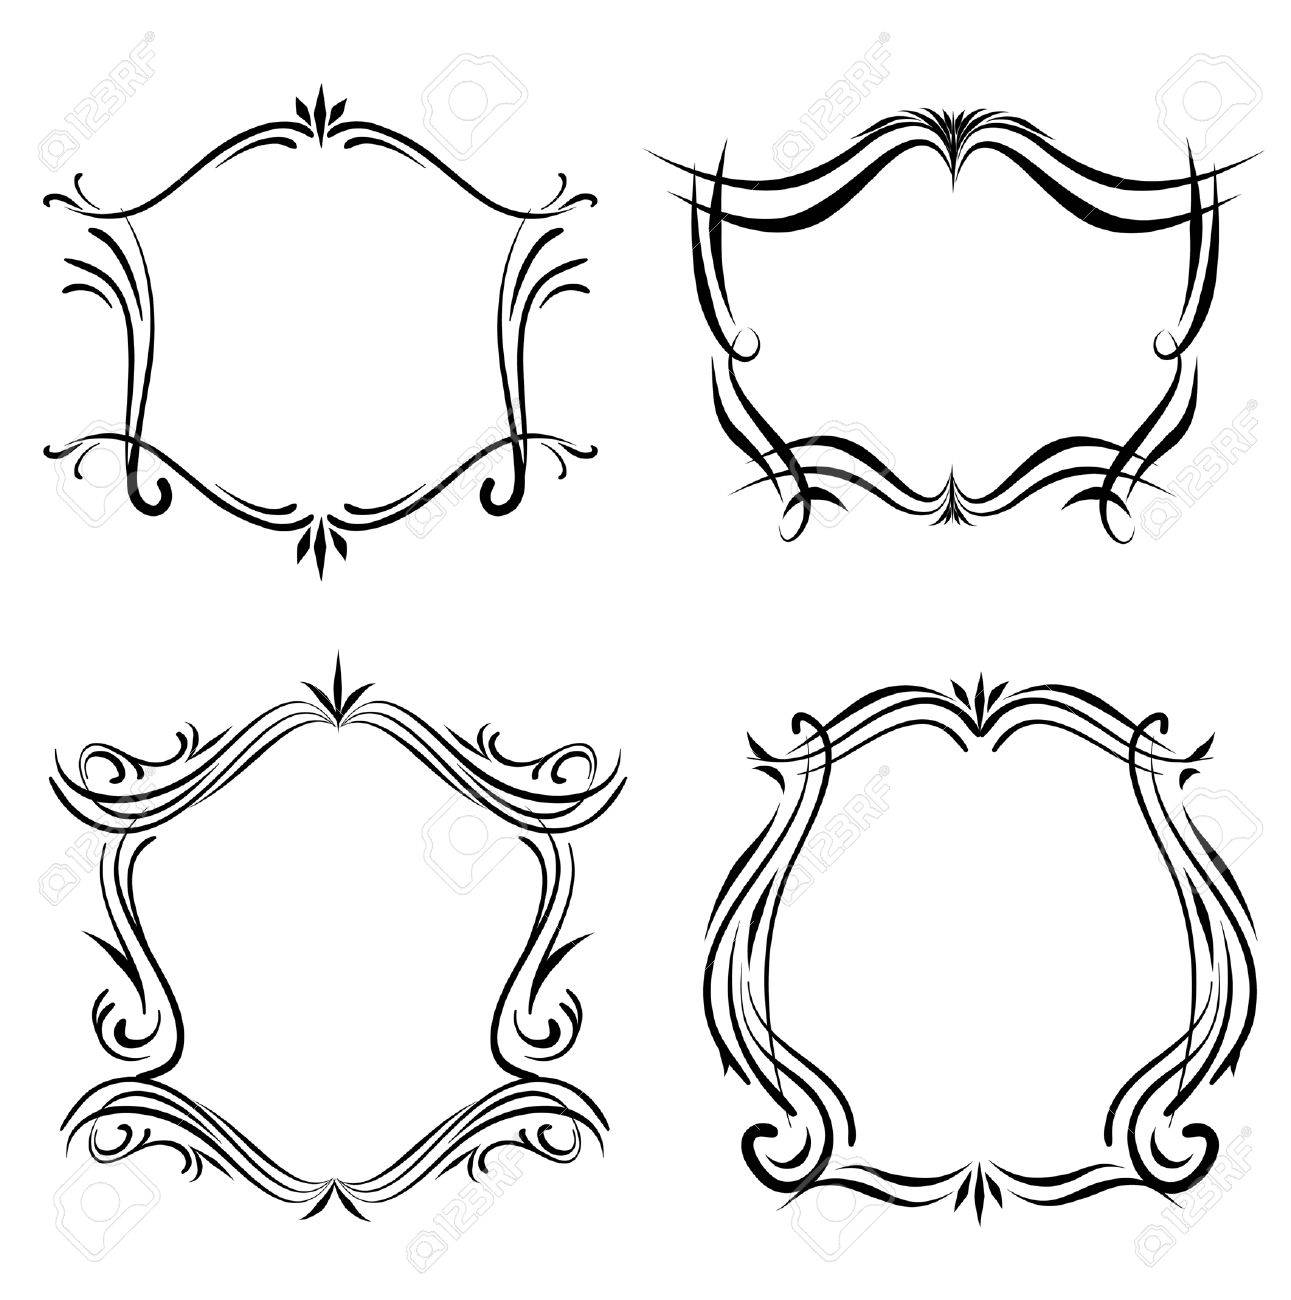 Decorative Line Art Western Victorian Frames Royalty Free Cliparts ...